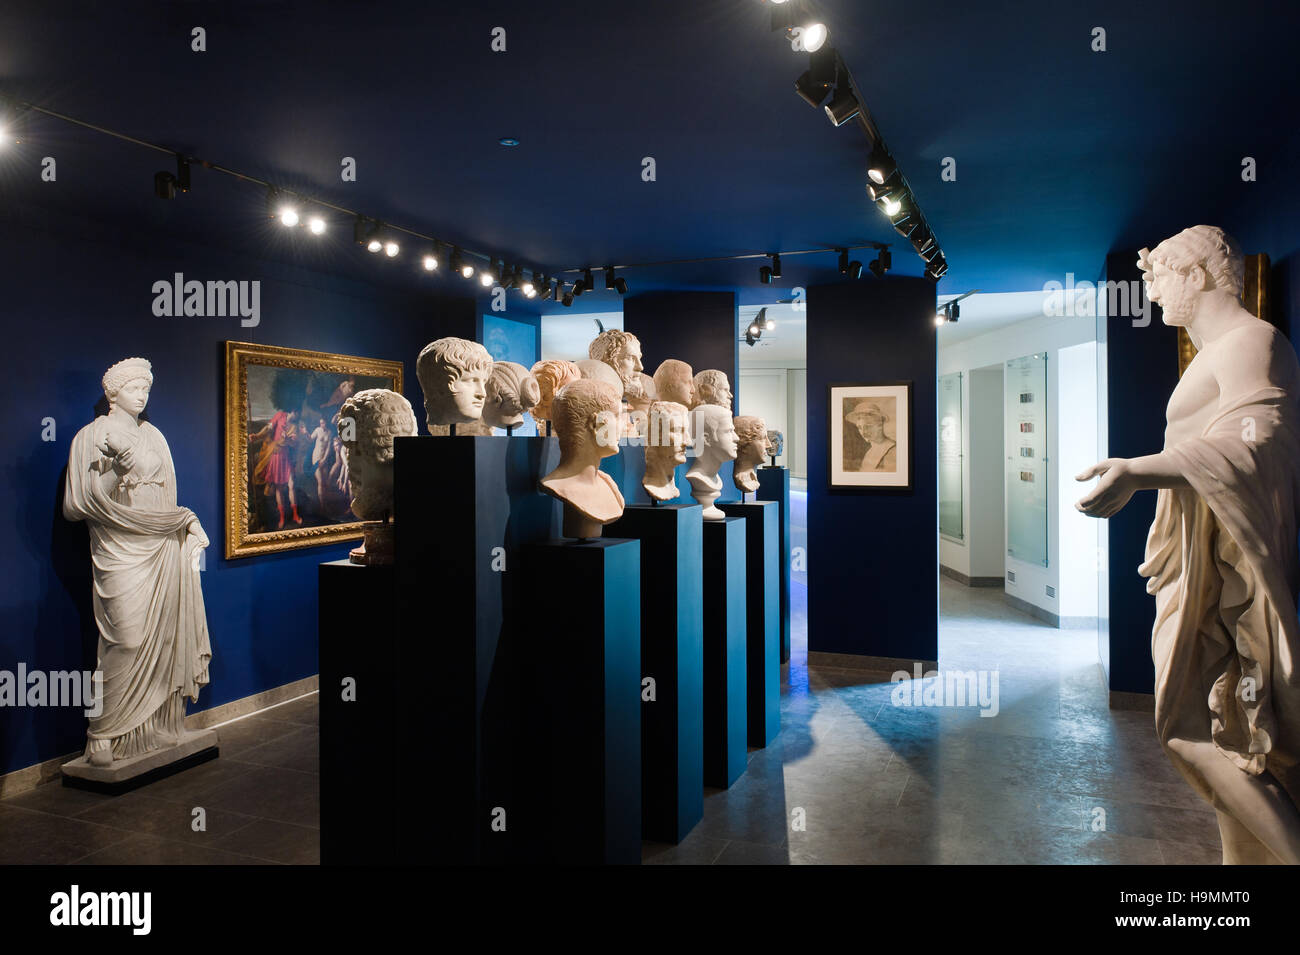 Collections of staues and bust on blue plinths in Mougins Museum of Classical Art, France - Stock Image